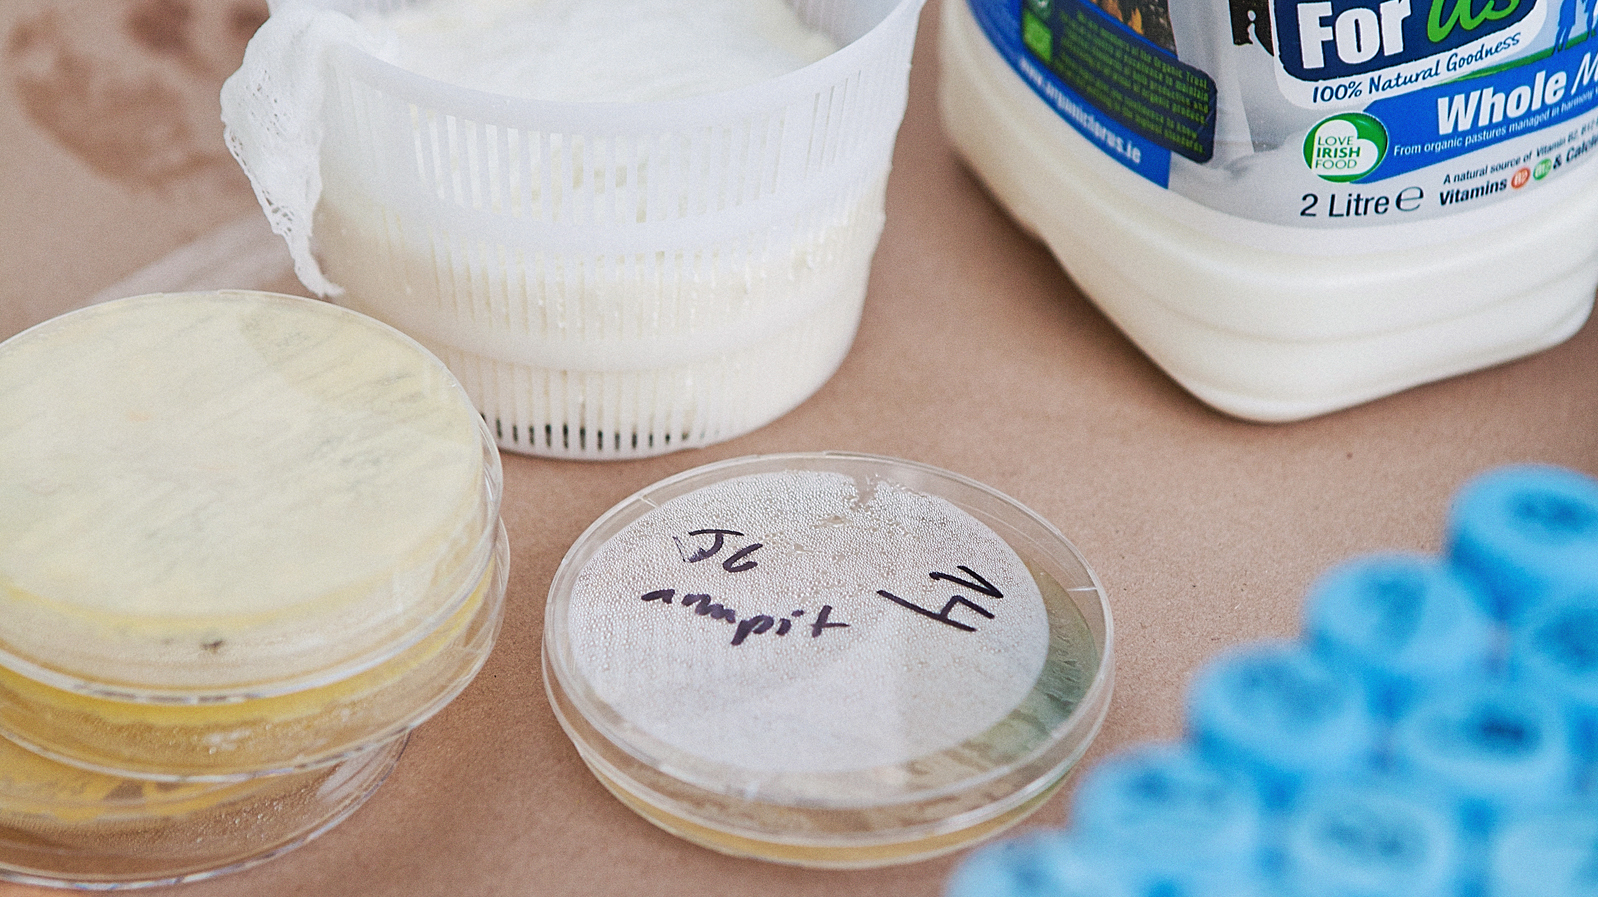 The cheesemakers collected swabs from volunteers, then let the bacteria and yeast multiply in Petri dishes in the lab before putting them into fresh milk.